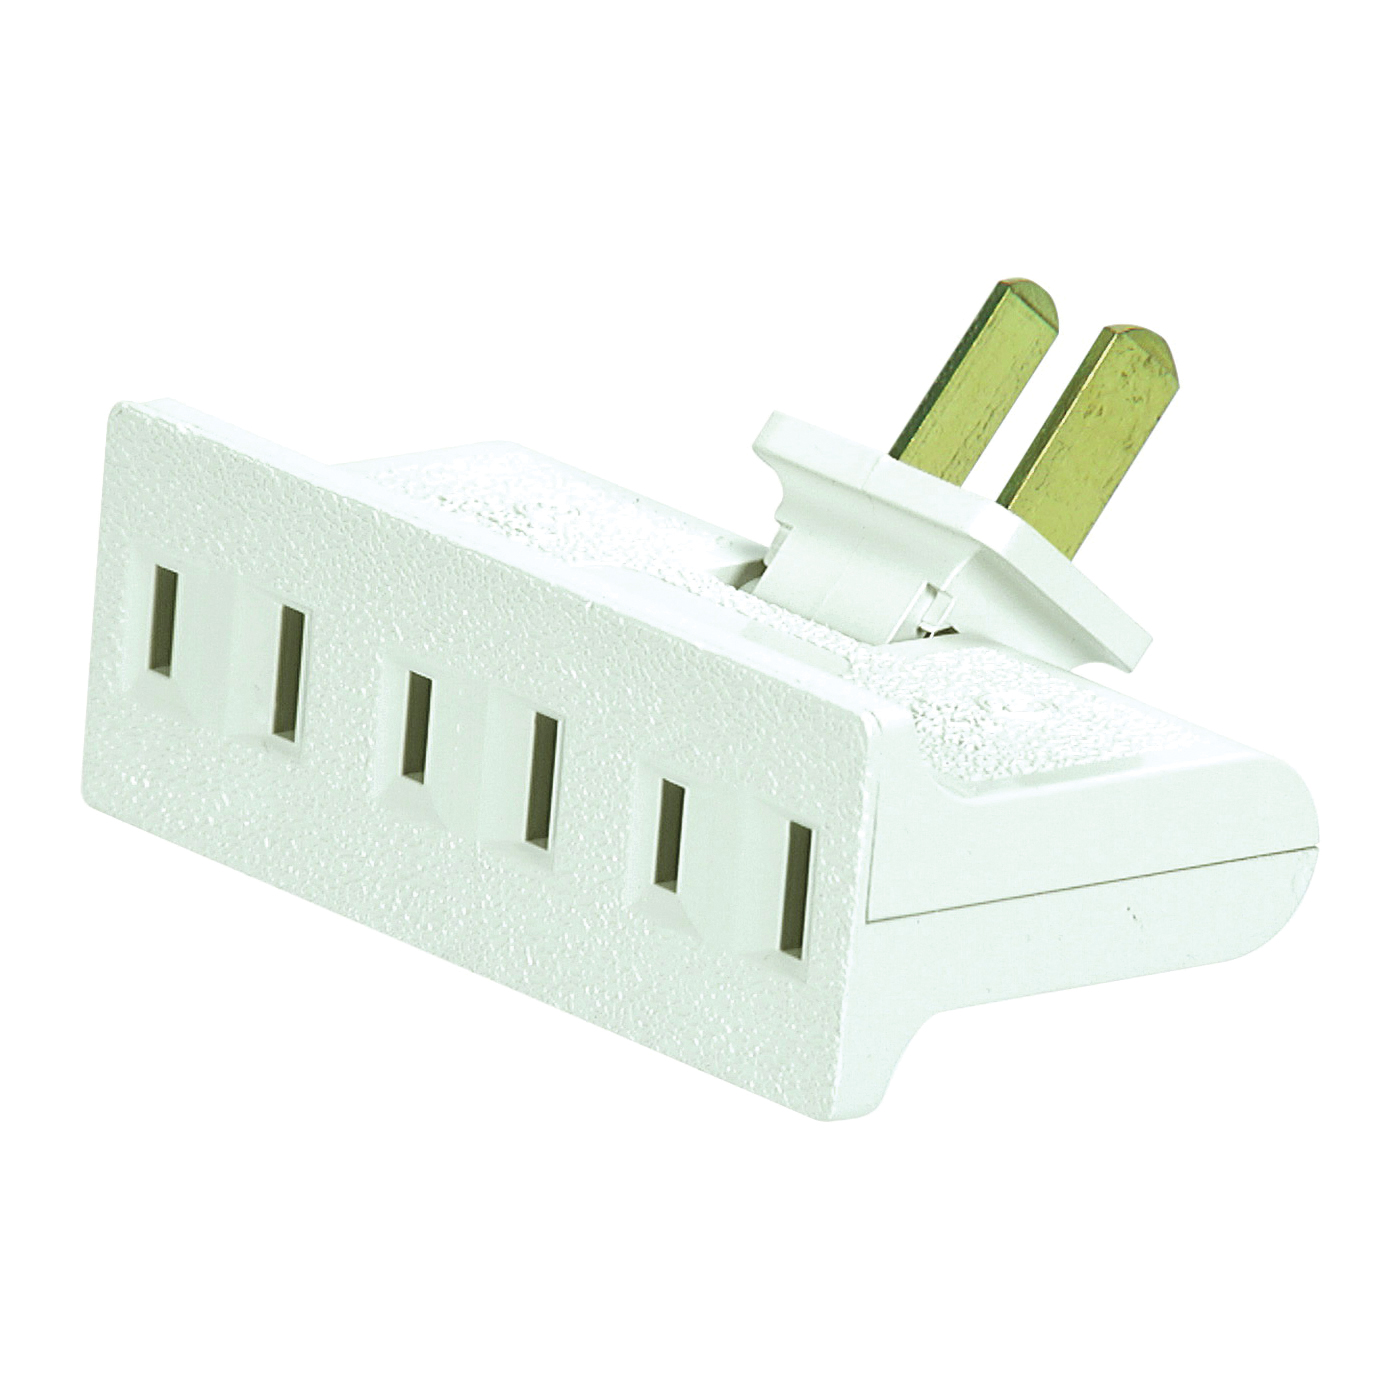 Picture of Eaton Cooper Wiring BP1792W-SP Non-Grounded Outlet Tap, 15 A, 2-Pole, 3-Outlet, White